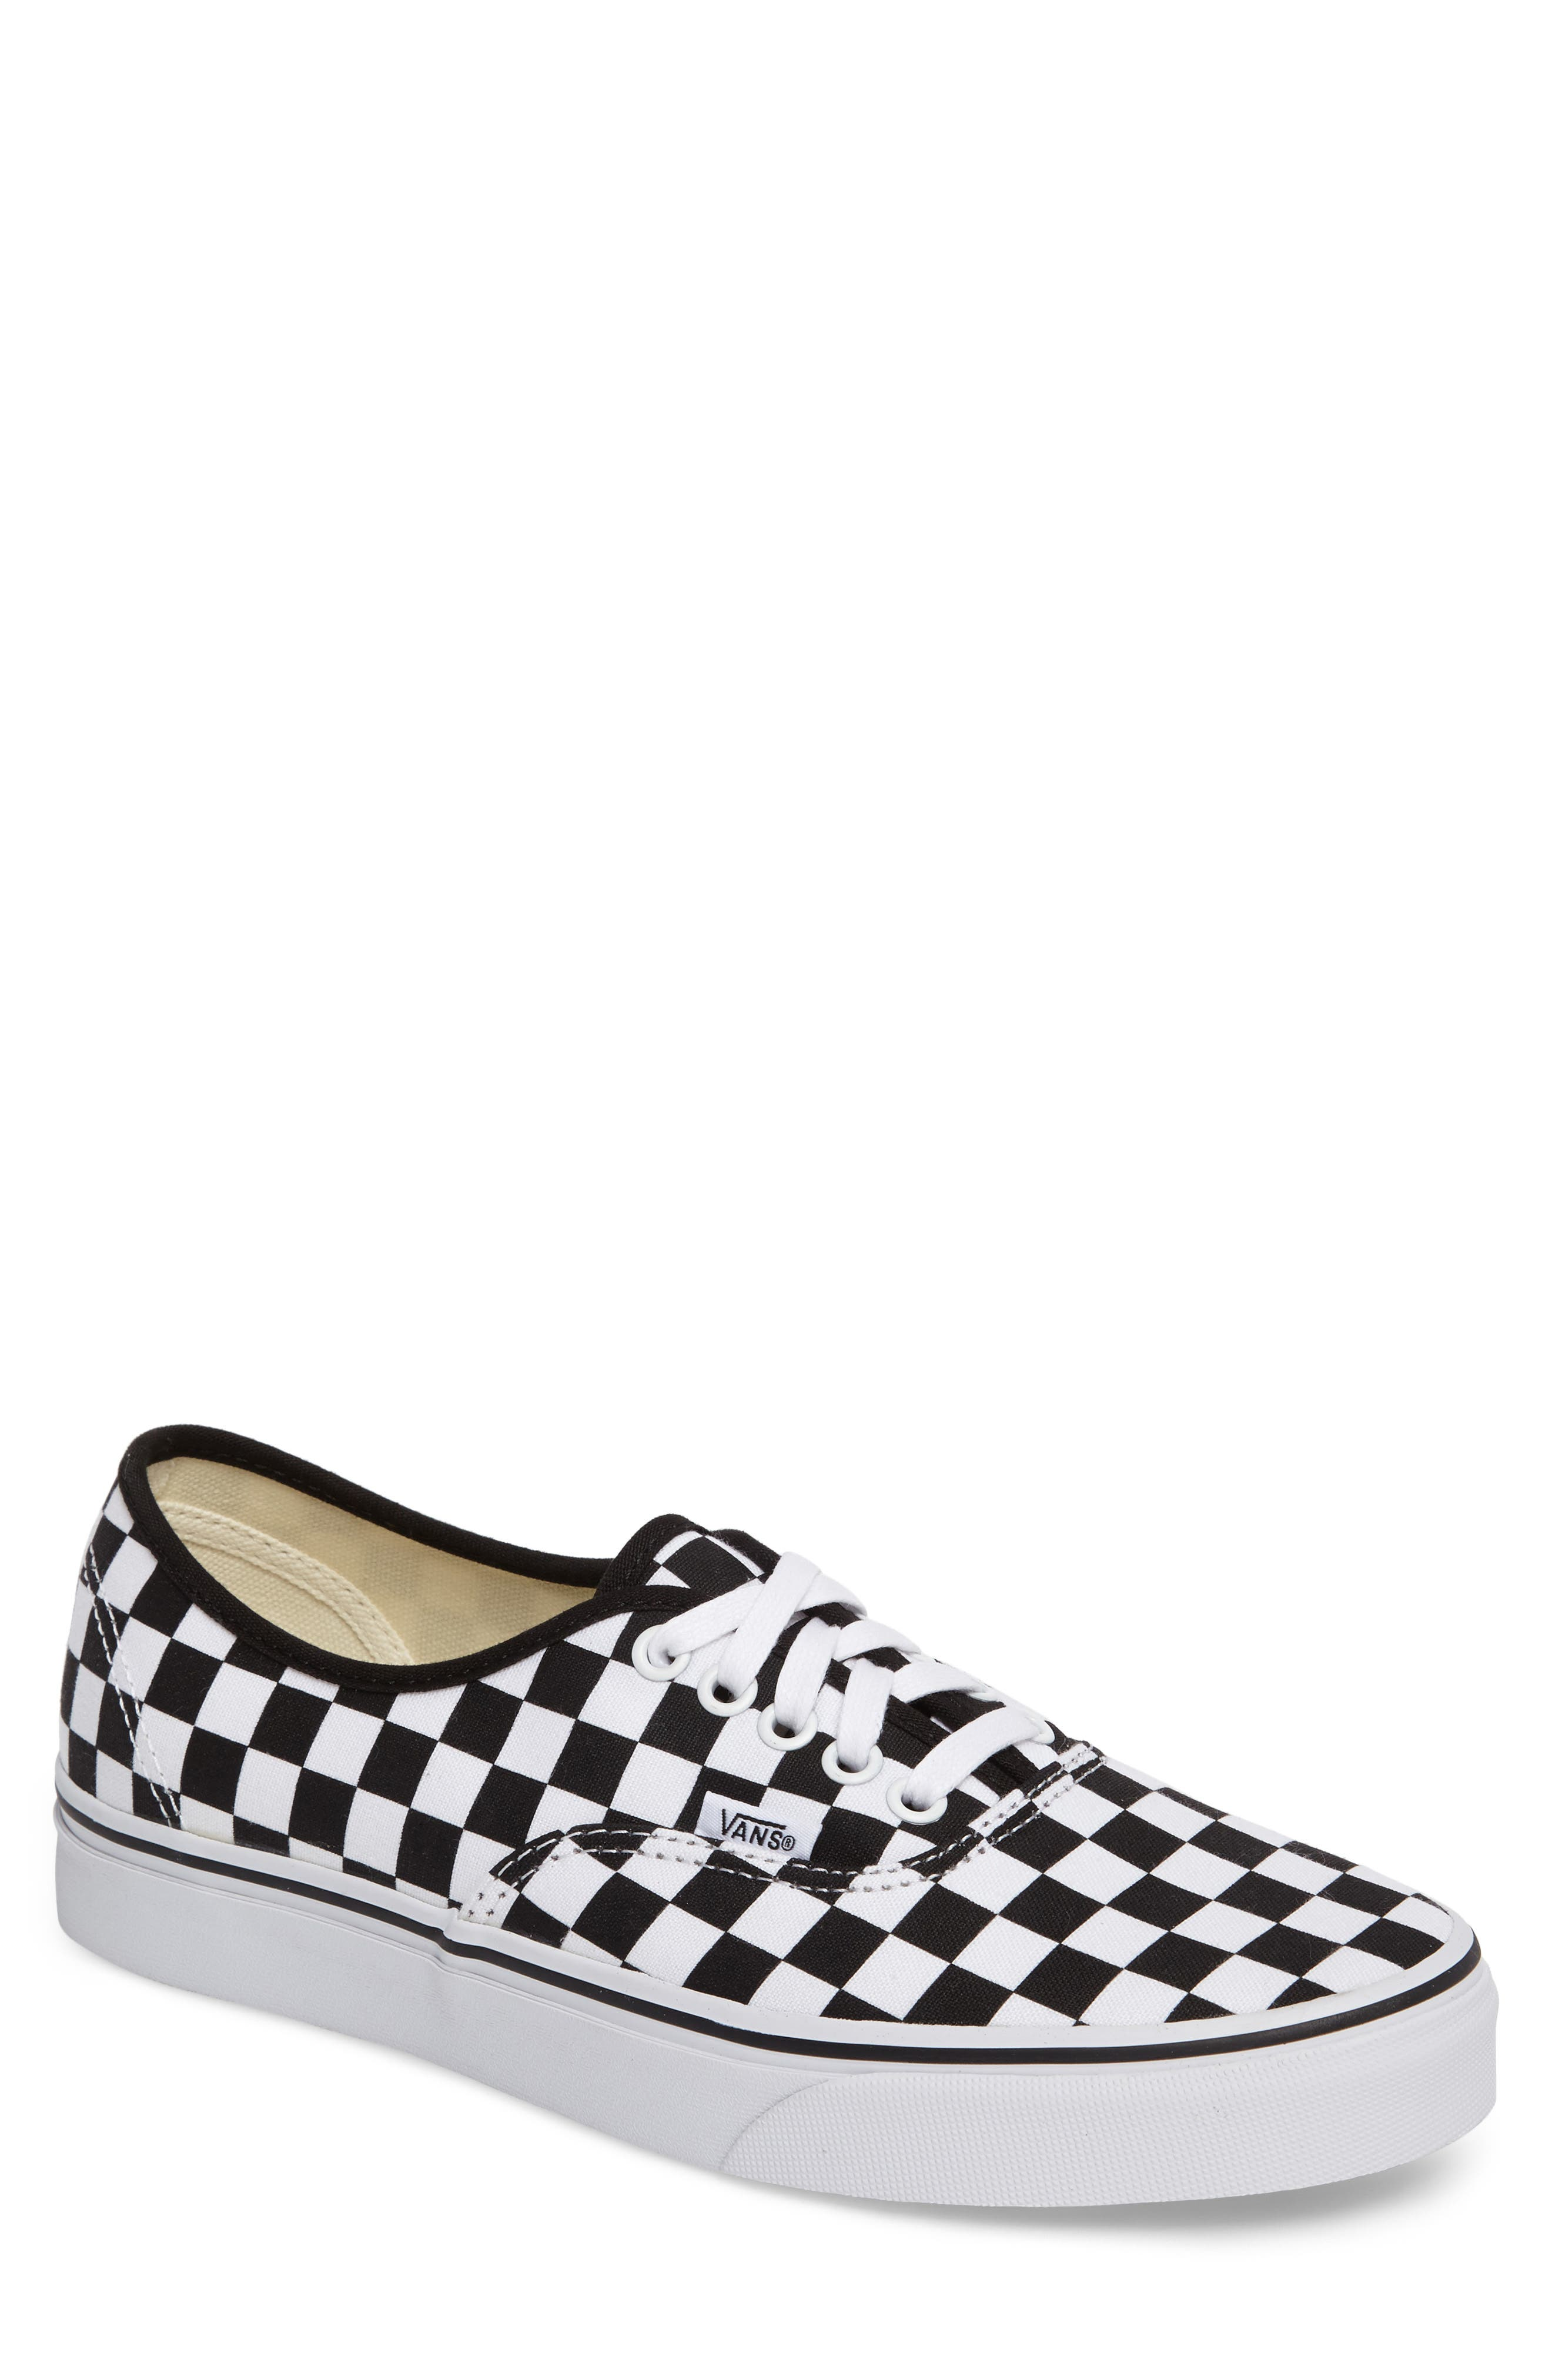 Authentic Sneaker,                             Main thumbnail 1, color,                             BLACK/ WHITE CHECKERBOARD